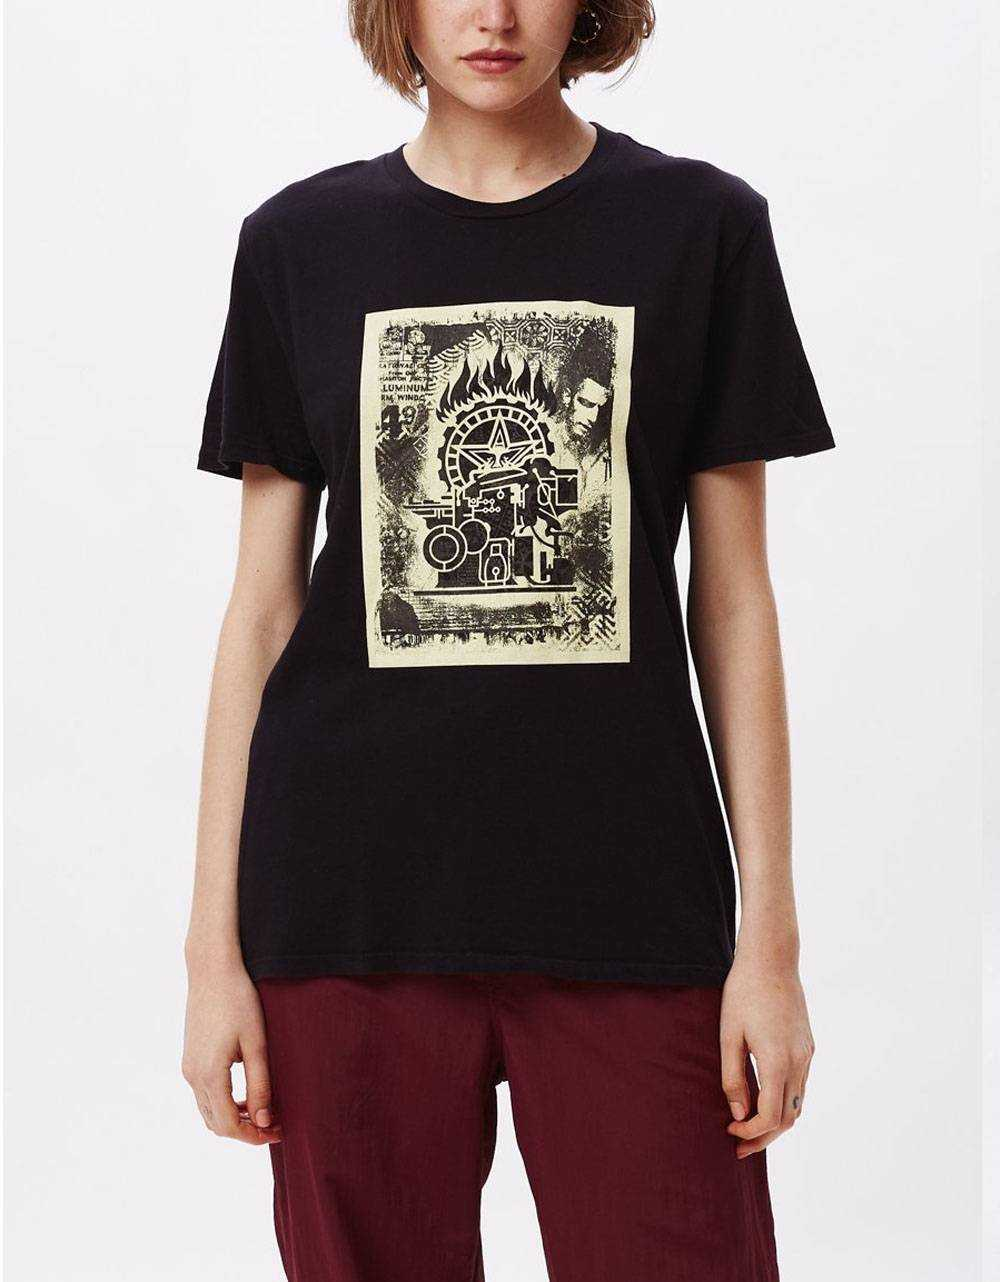 Obey Woman press etching classic tee - black obey T-shirt 36,89 €